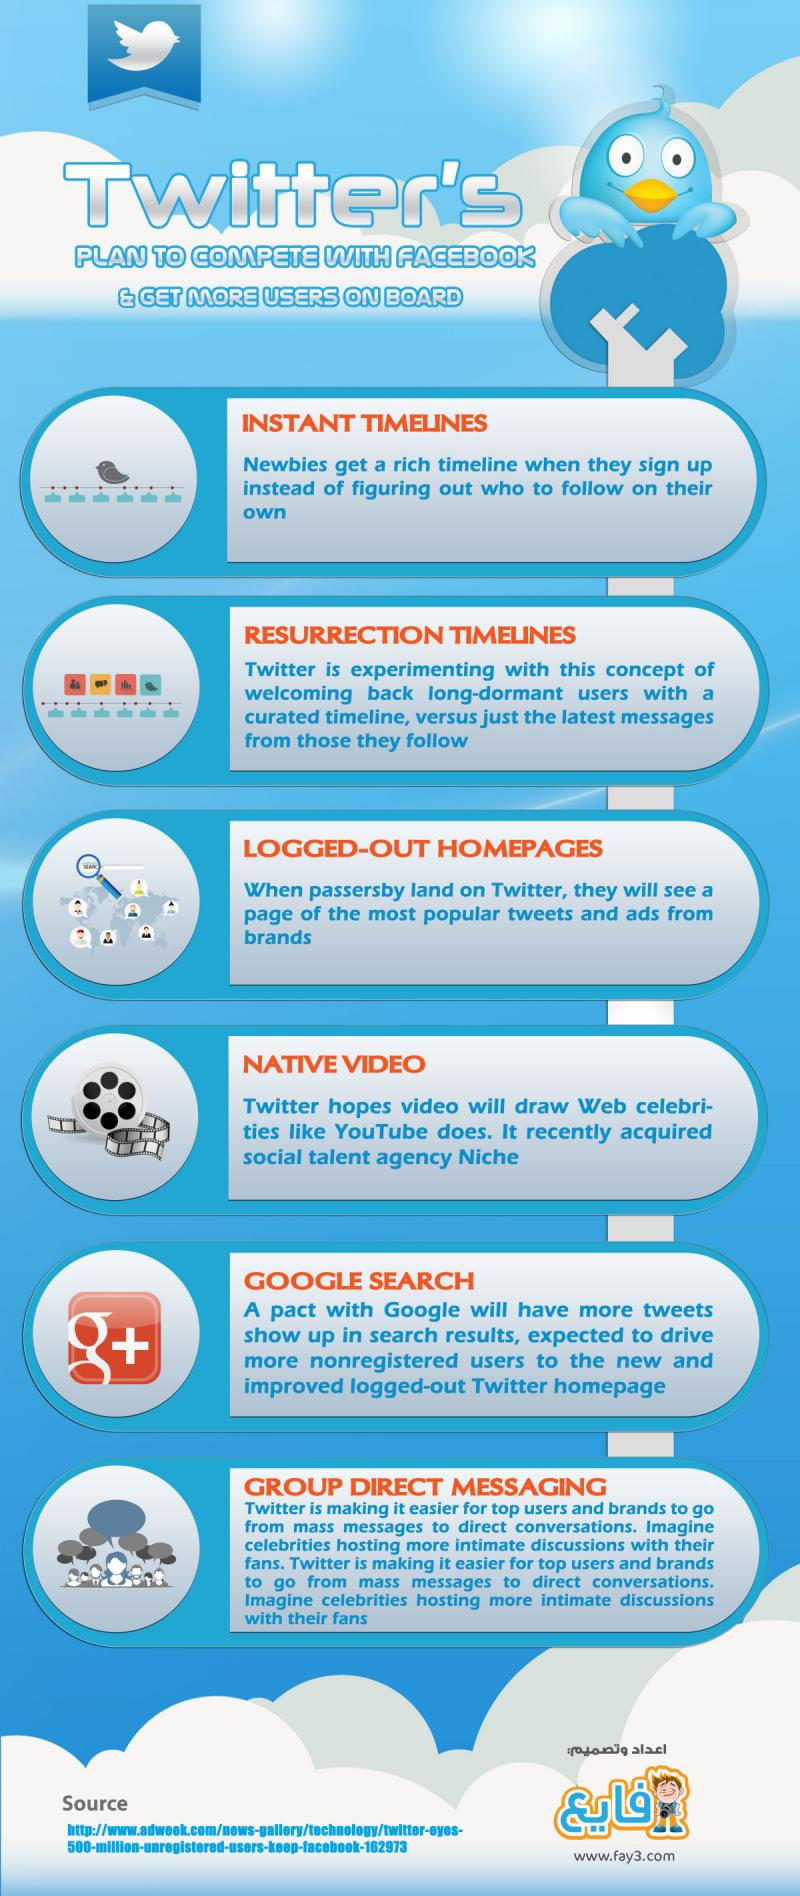 Twitter's plan to compete with #Facebook #infographic